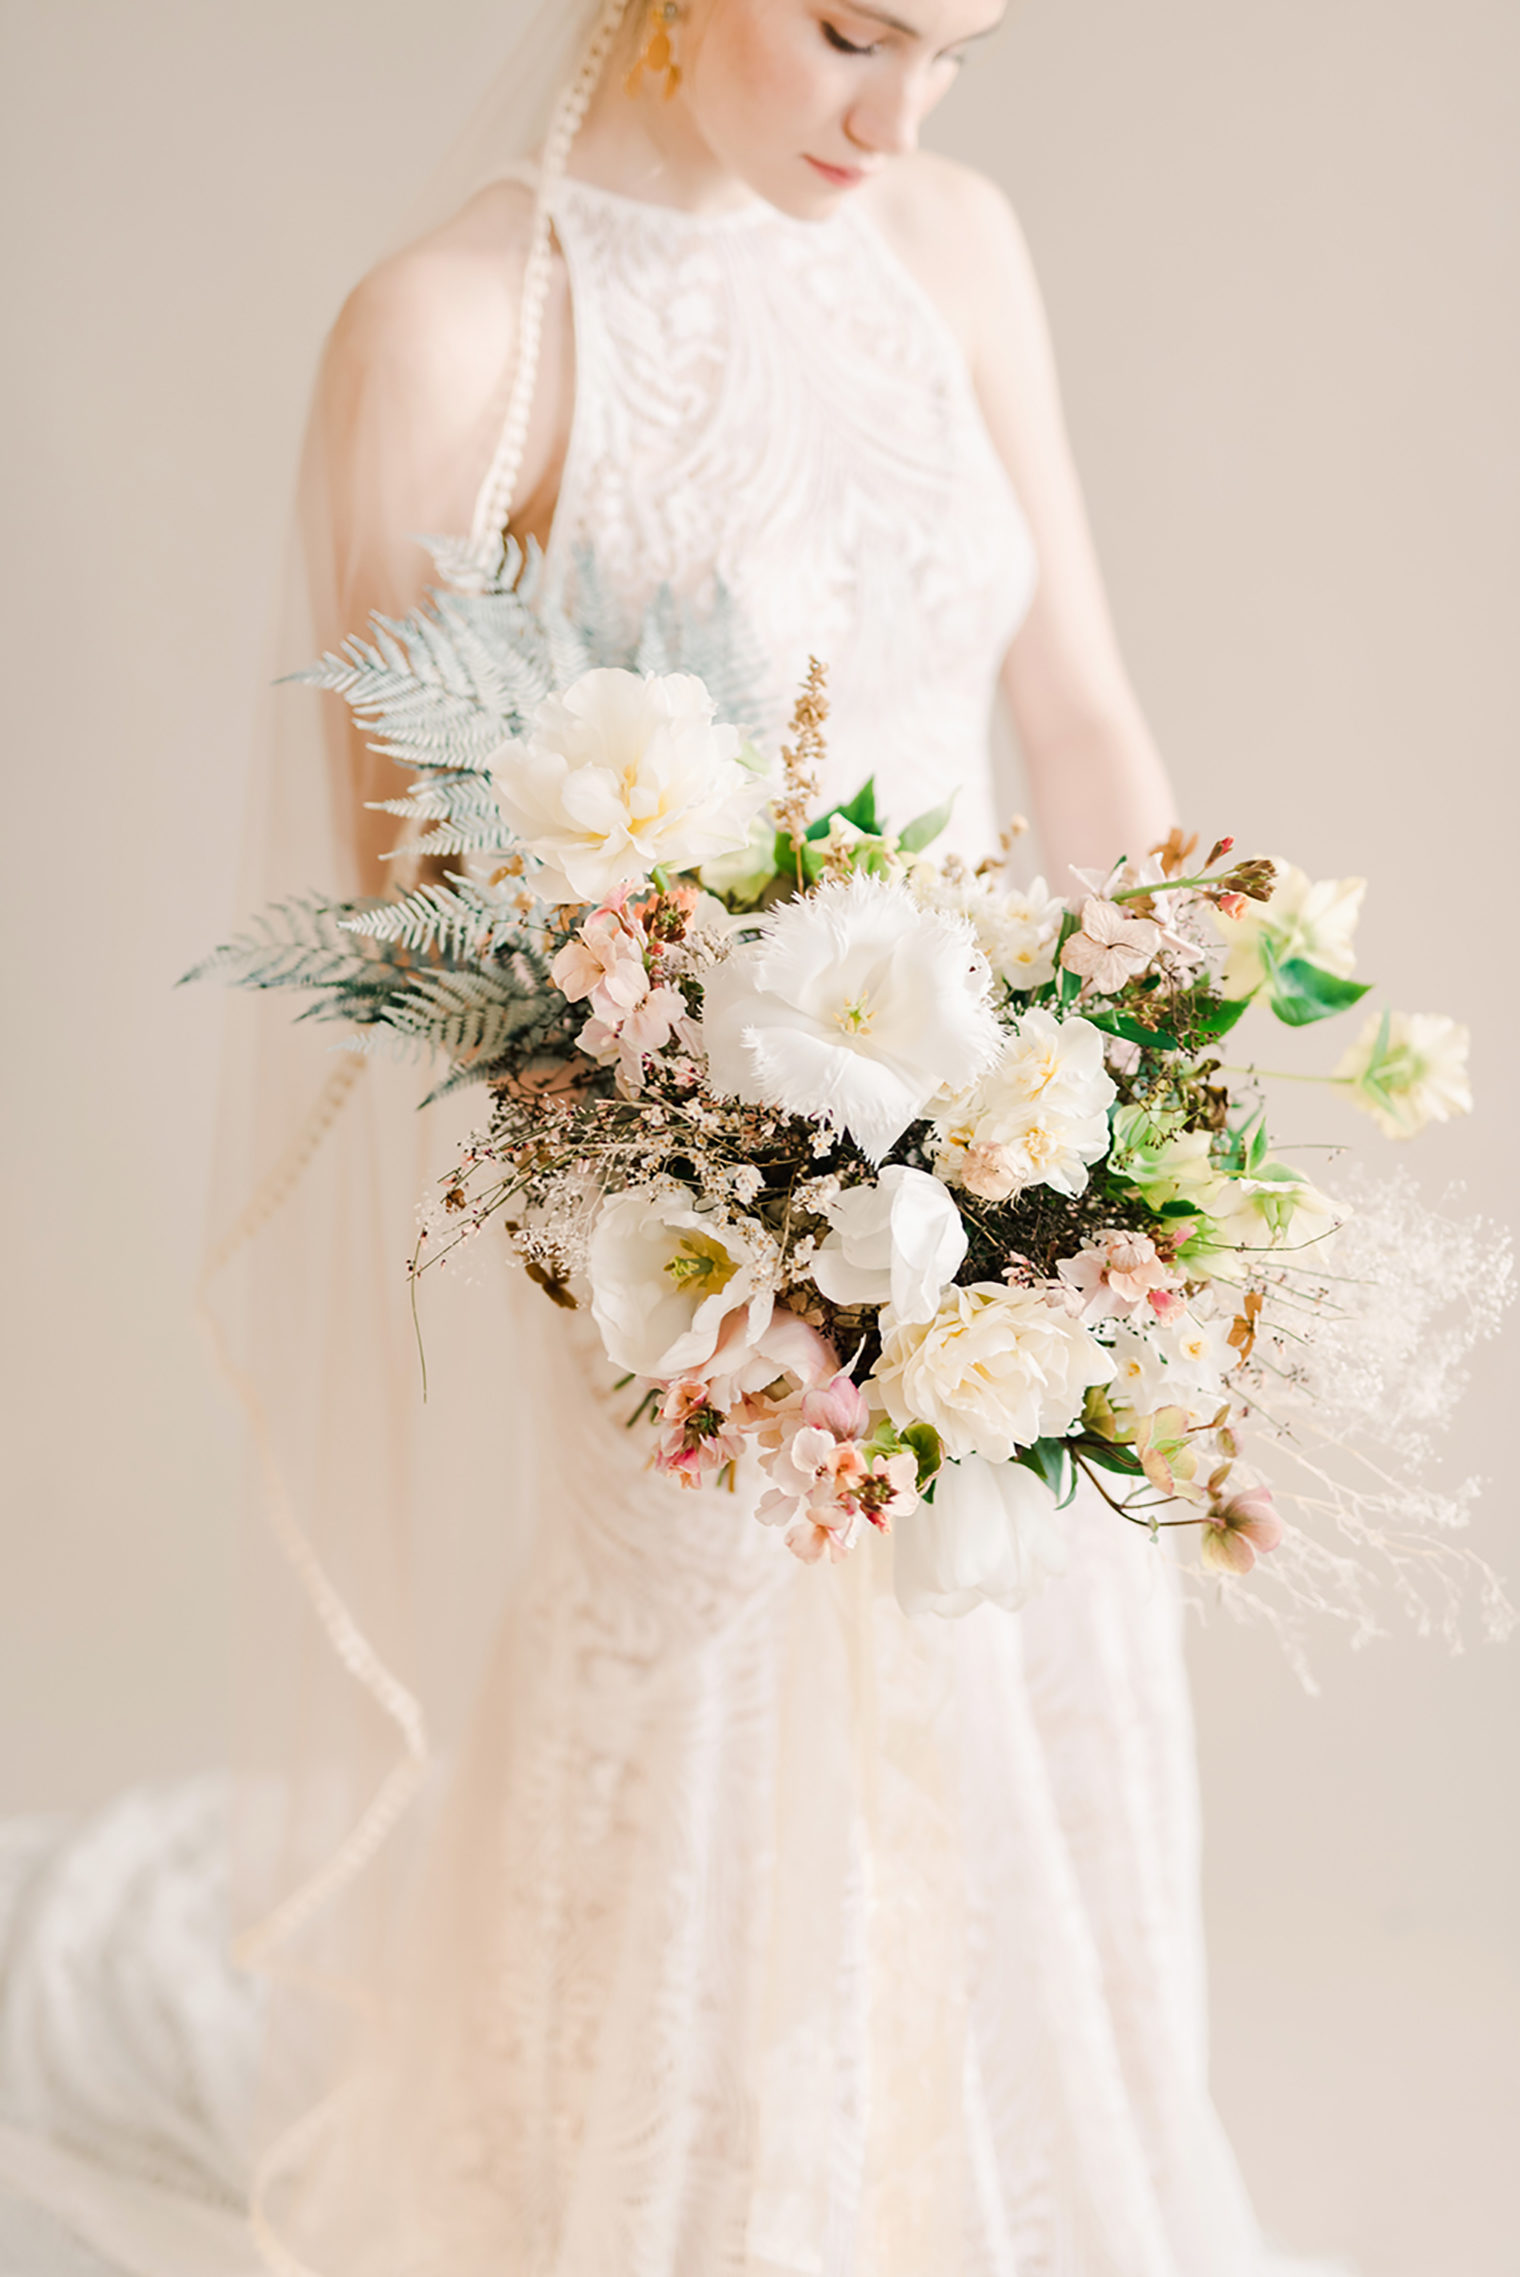 Photography by Emma Pilkington Wedding Flowers by Fletcher & Foley